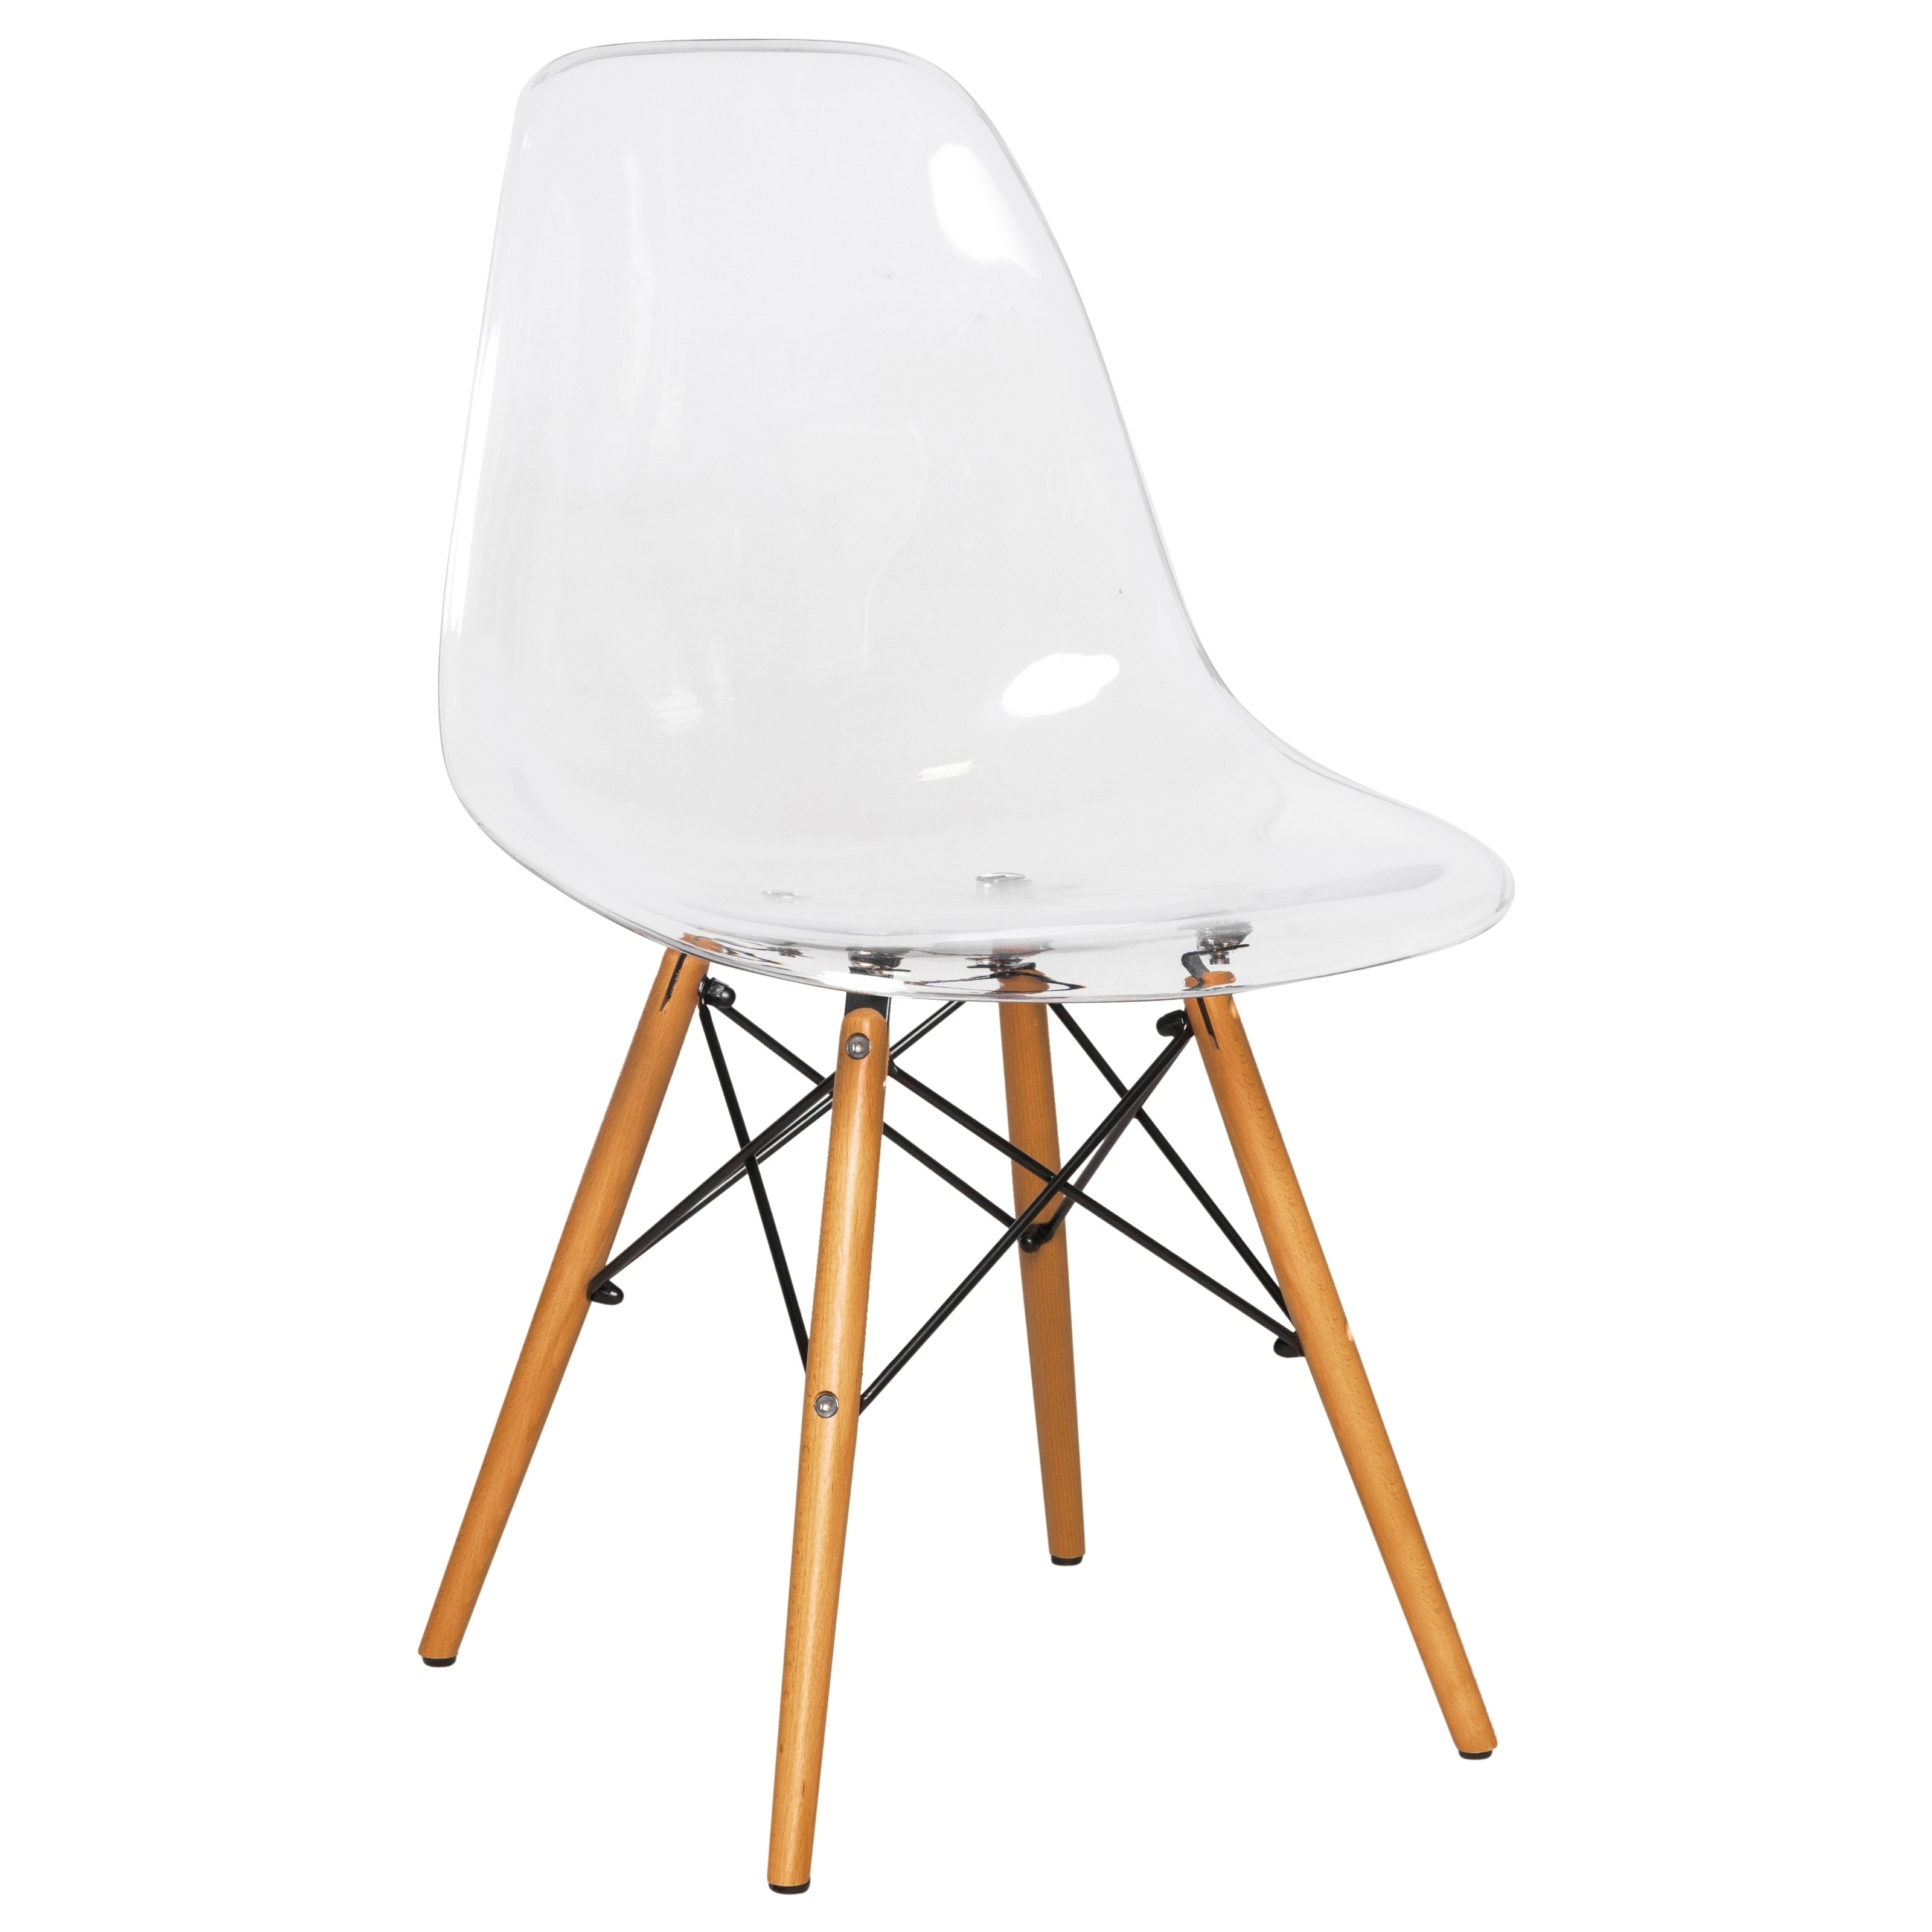 Magnificent Leisuremod Dover Molded Clear Side Dining Chair Eiffel Wood Legs Dailytribune Chair Design For Home Dailytribuneorg